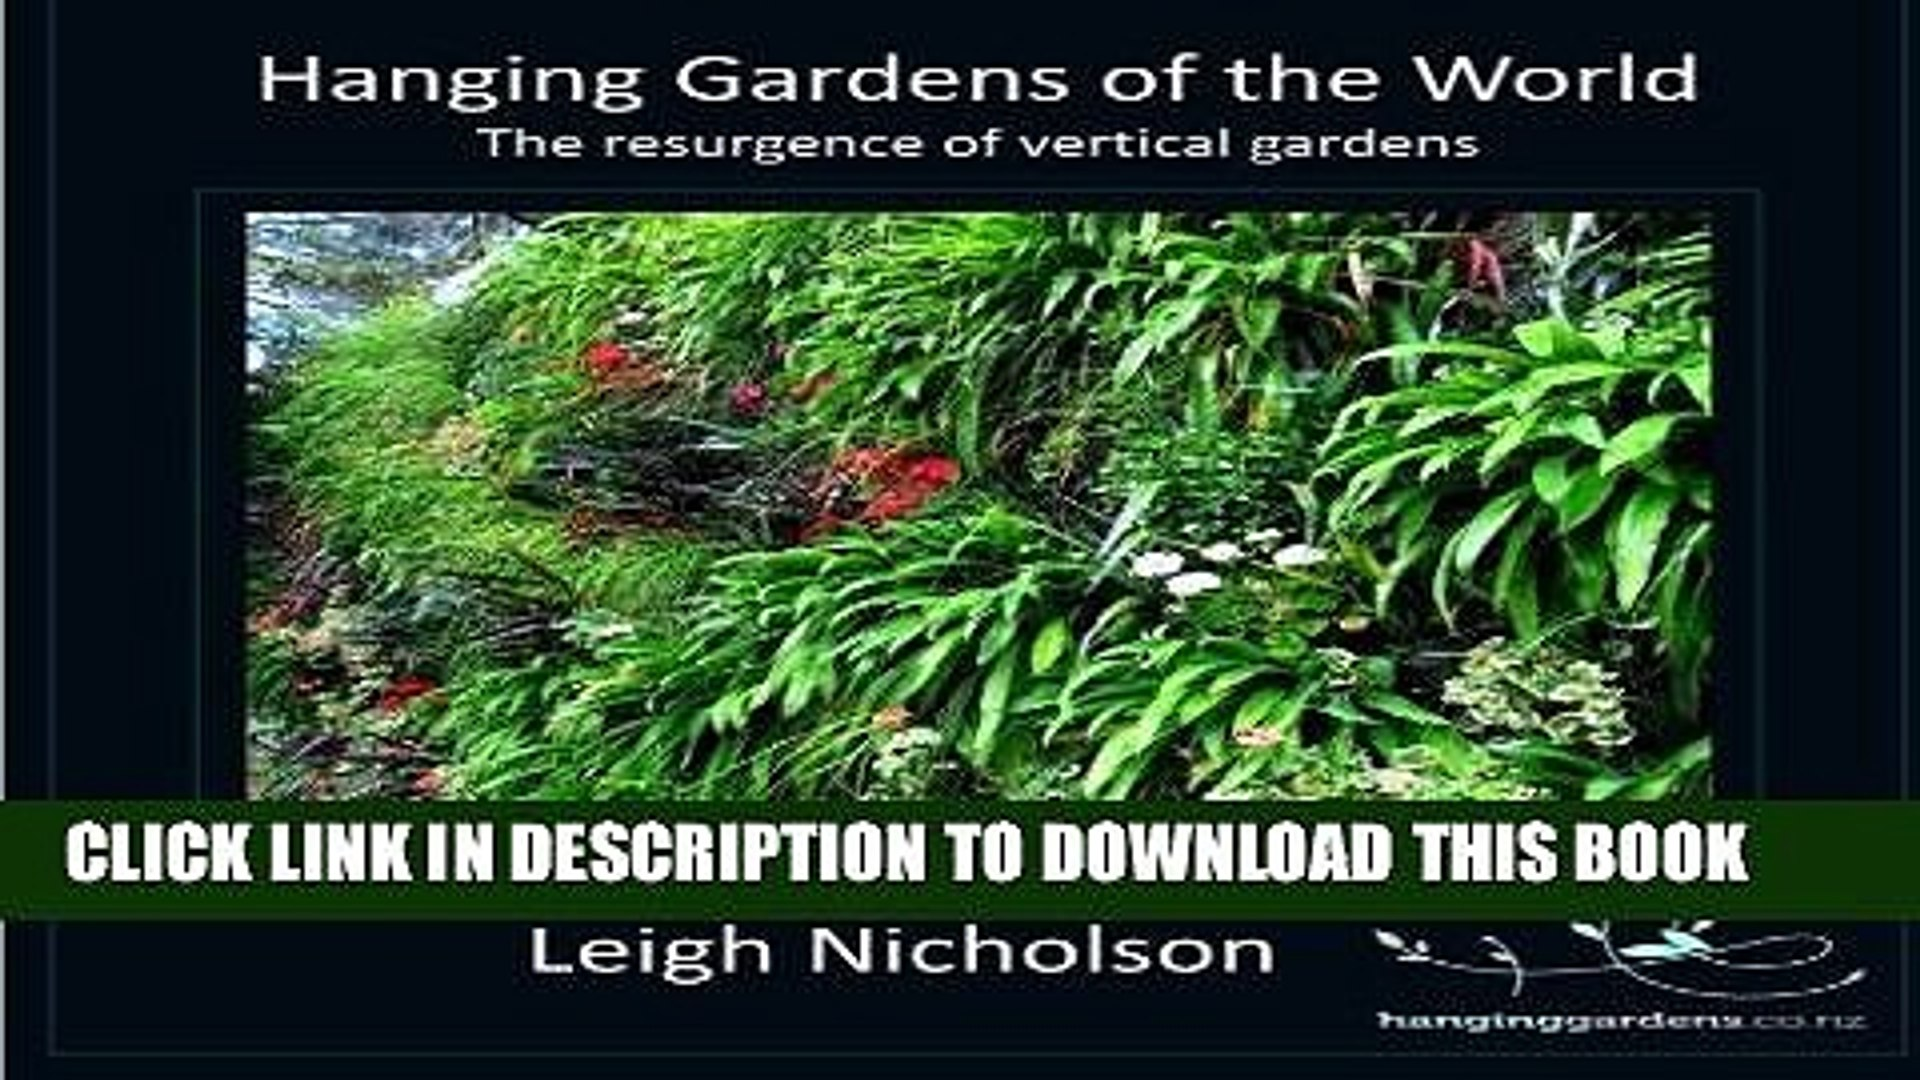 Best Seller Hanging Gardens of the World: The resurgence of Vertical Gardens Free Download